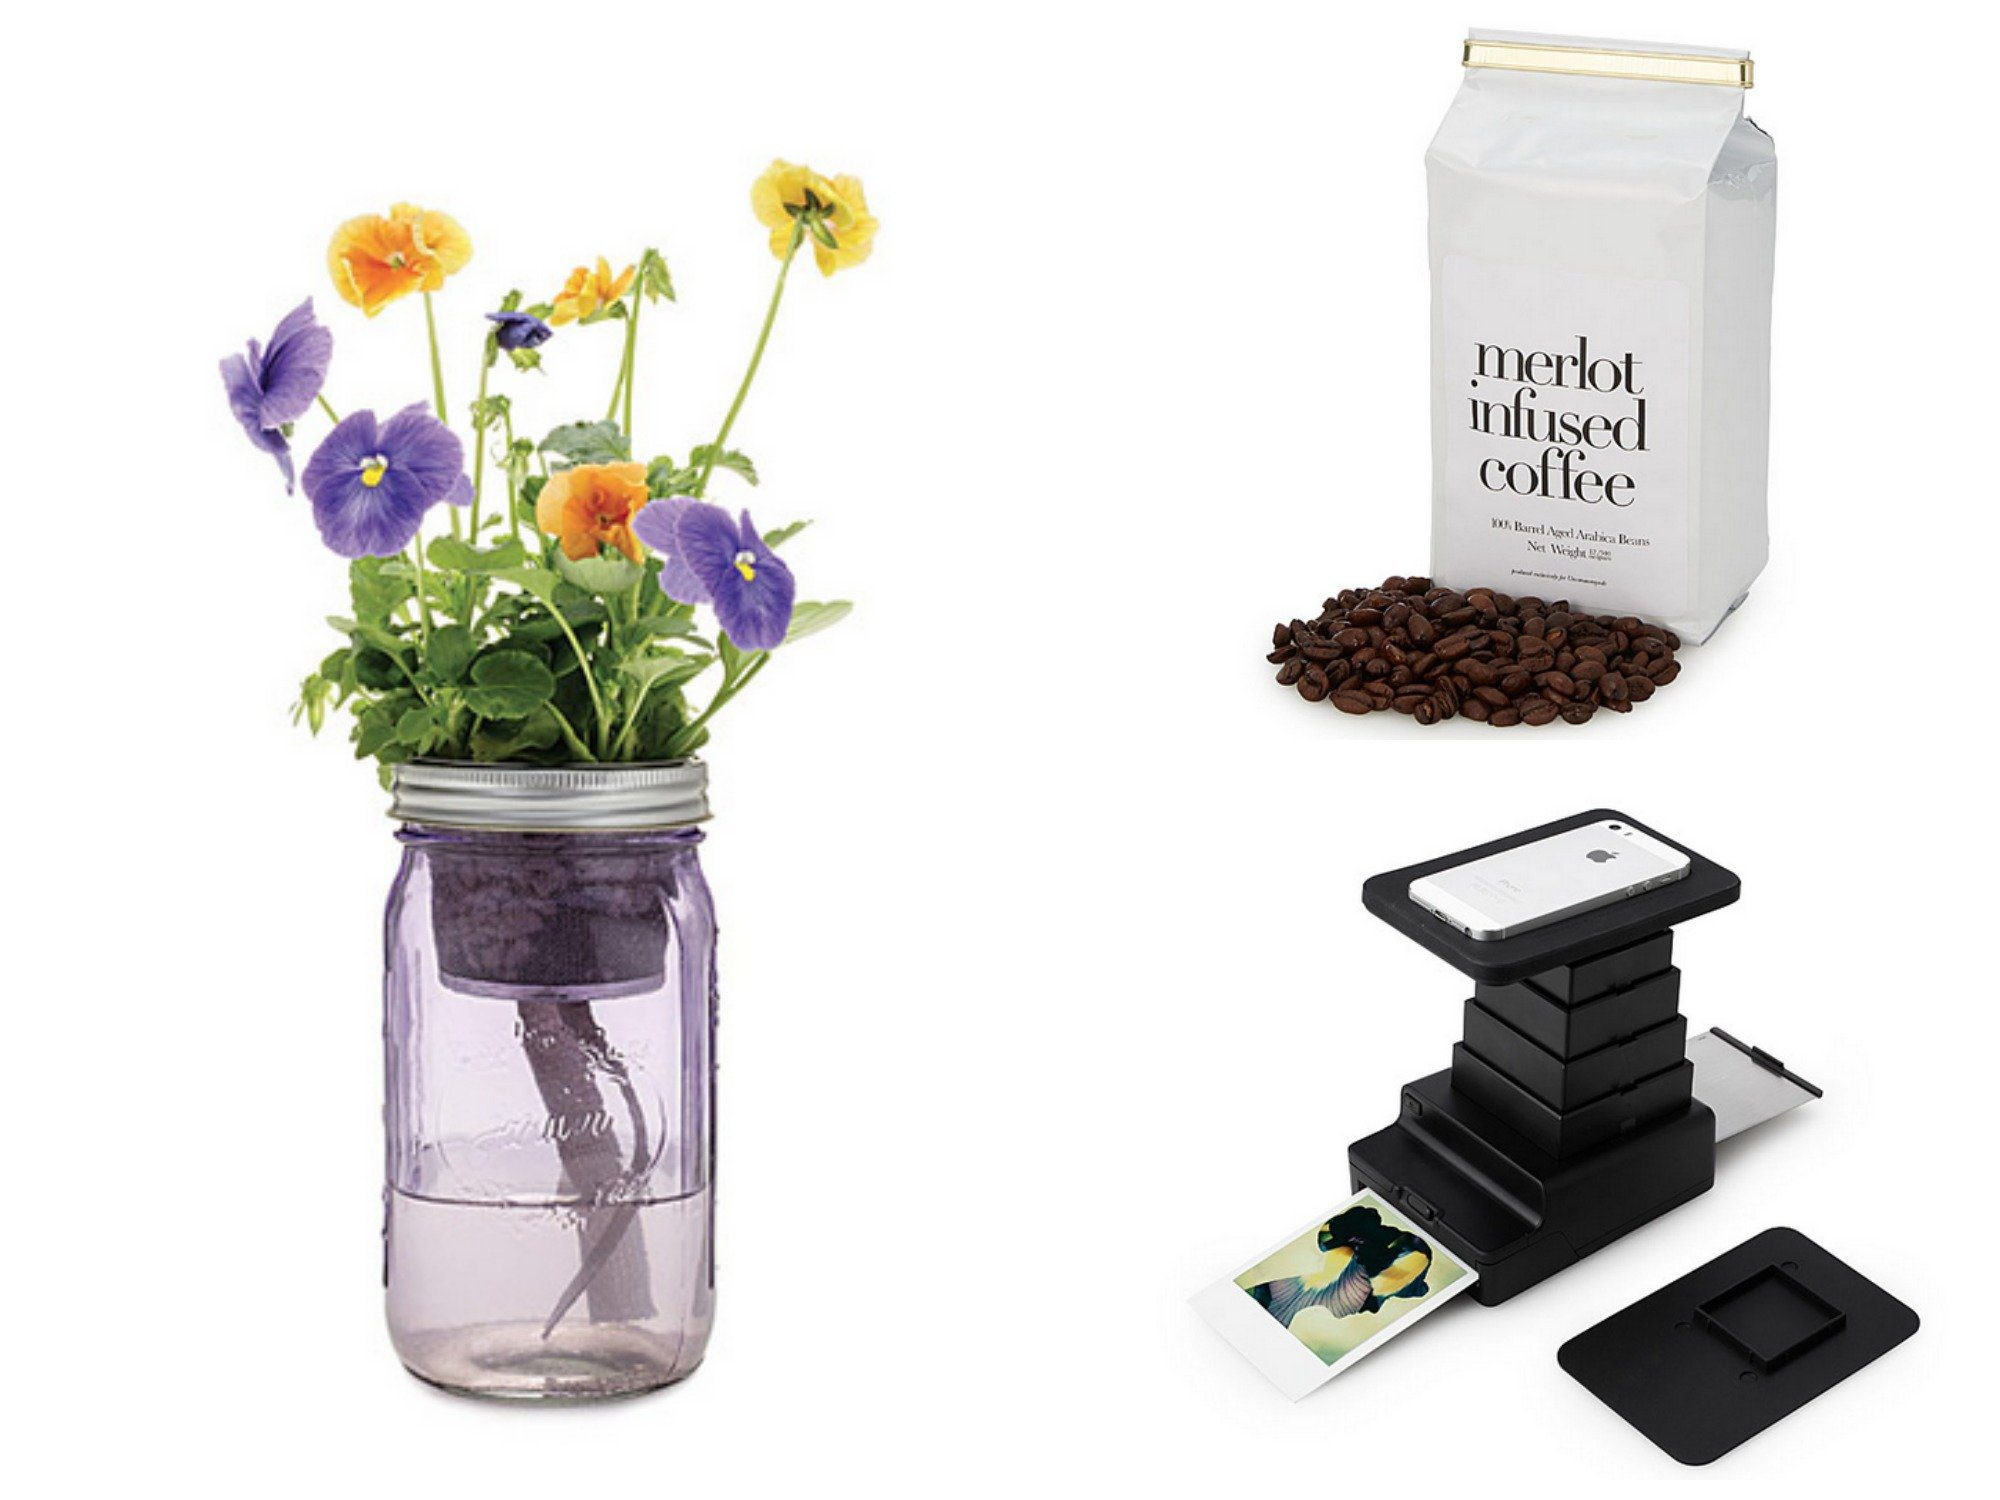 Tired of chocolates and flowers? Here are more than a dozen Valentine gifts for the man, woman, and couples in your life that simply don't suck!